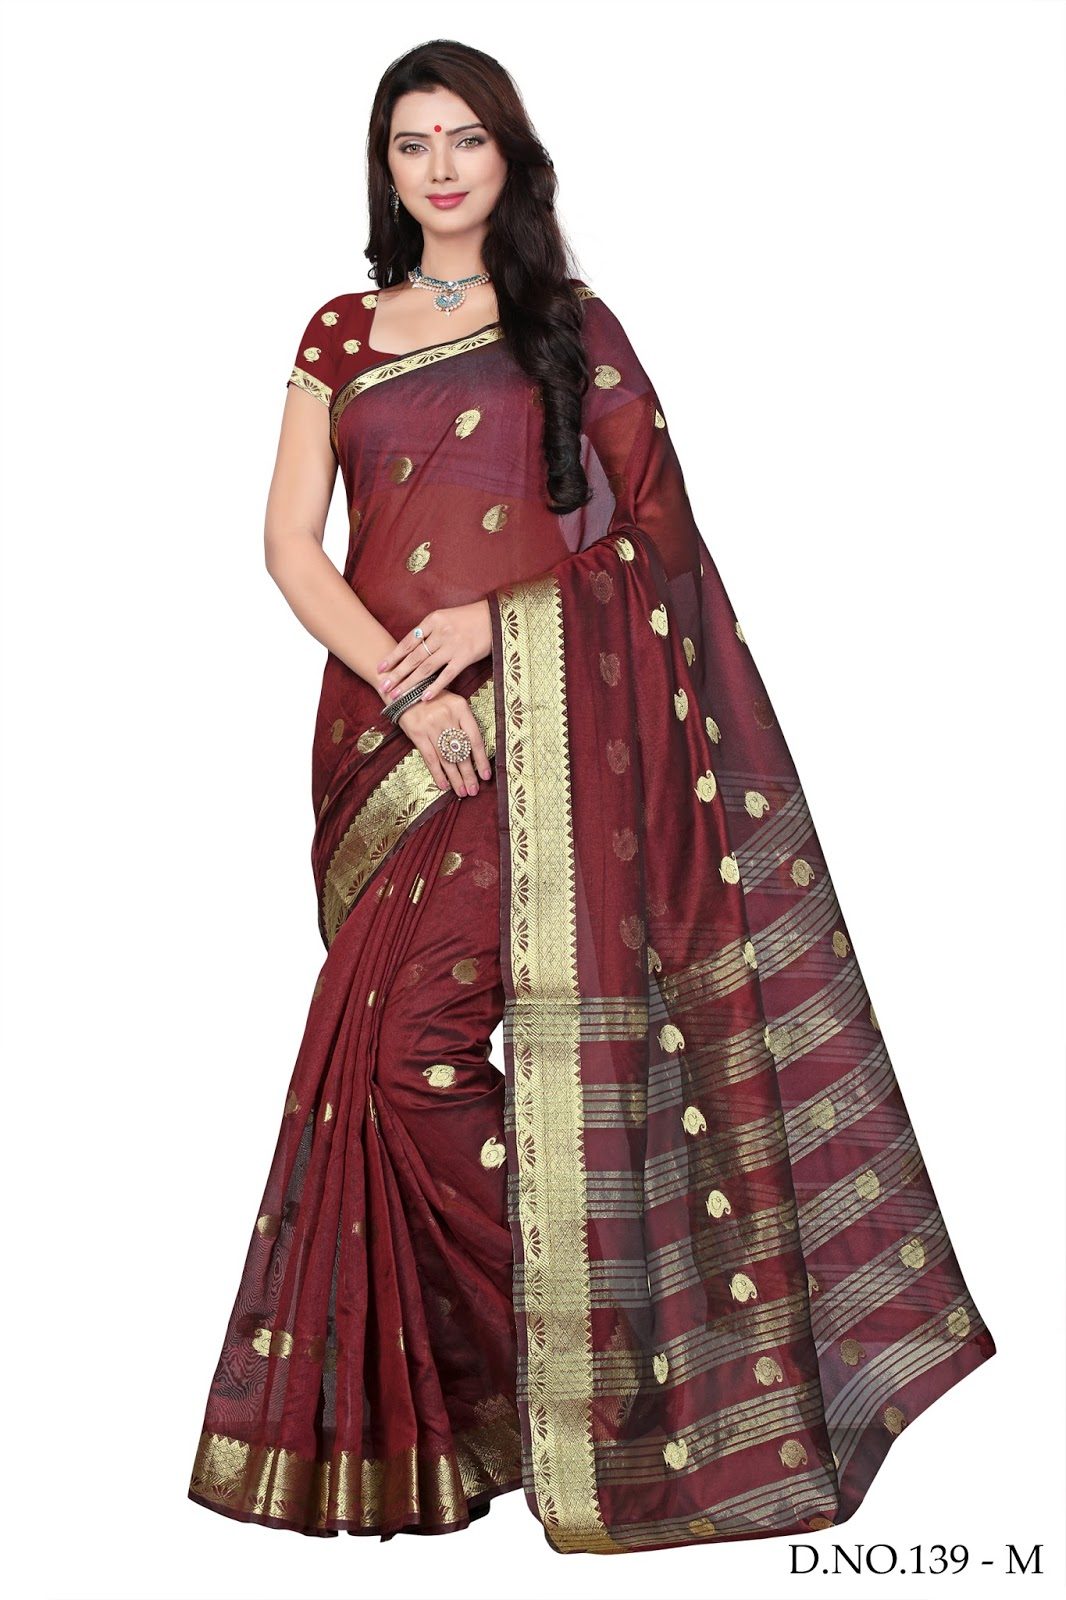 Vol 4 – Latest Exclusive Banarsi Silk Printed Saree Buy Online